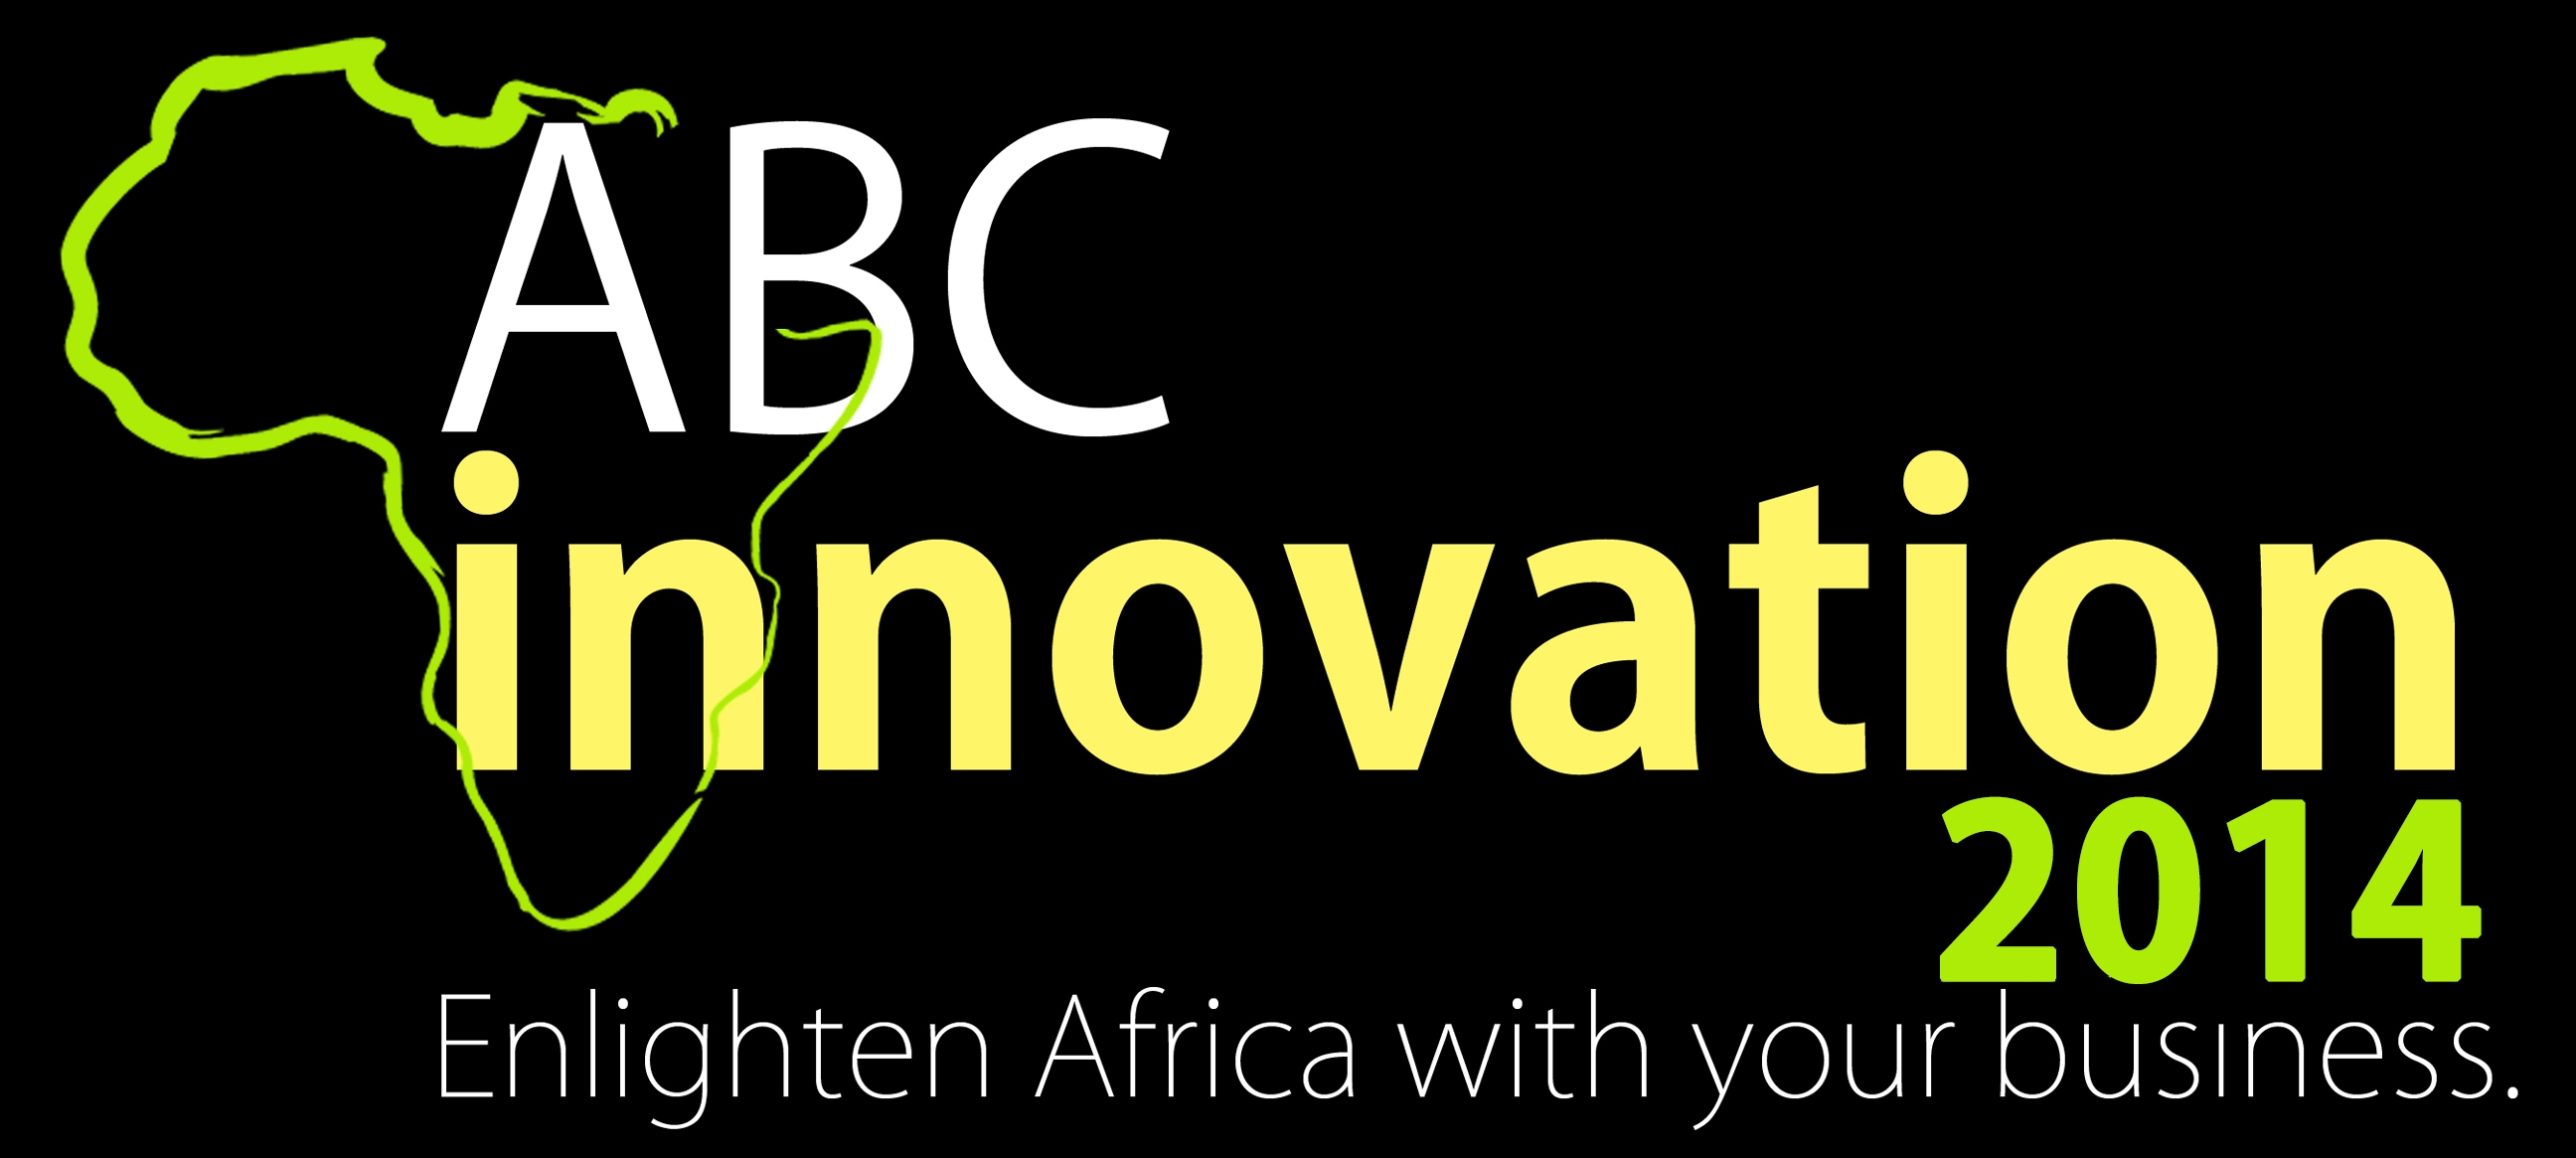 ABC Innovation 2014